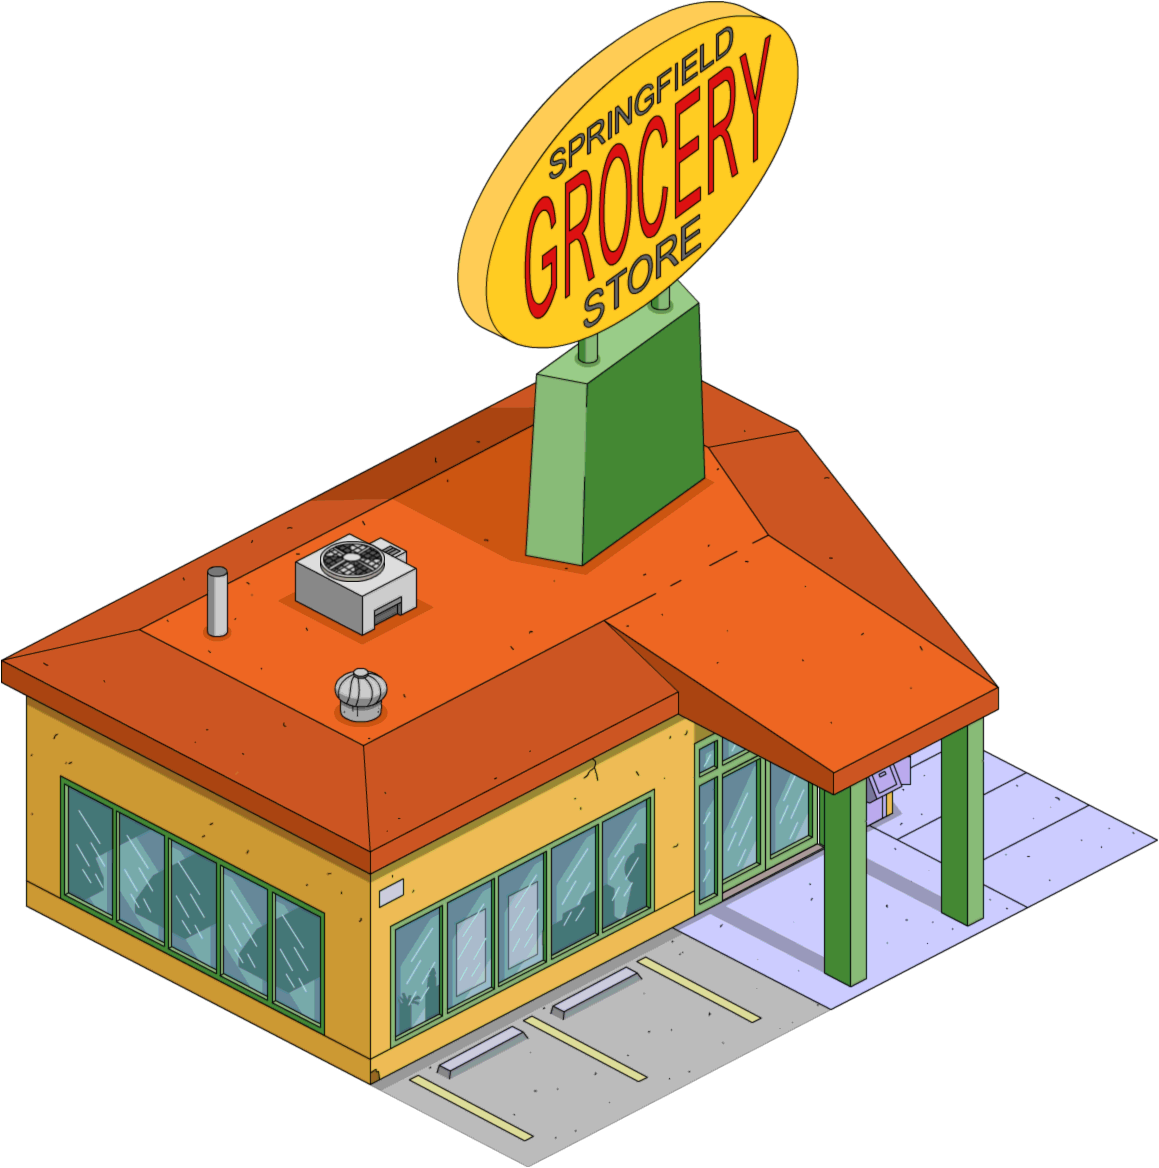 vector royalty free download Supermarket clipart outside. Picture of grocery store